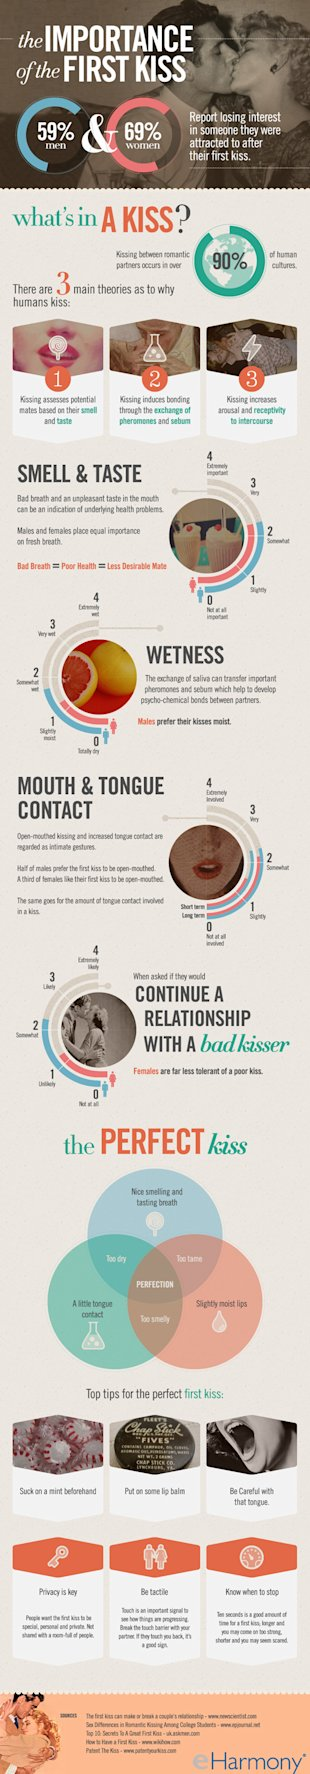 The Importance of the First Kiss [Infographic] image The Importance of the First Kiss